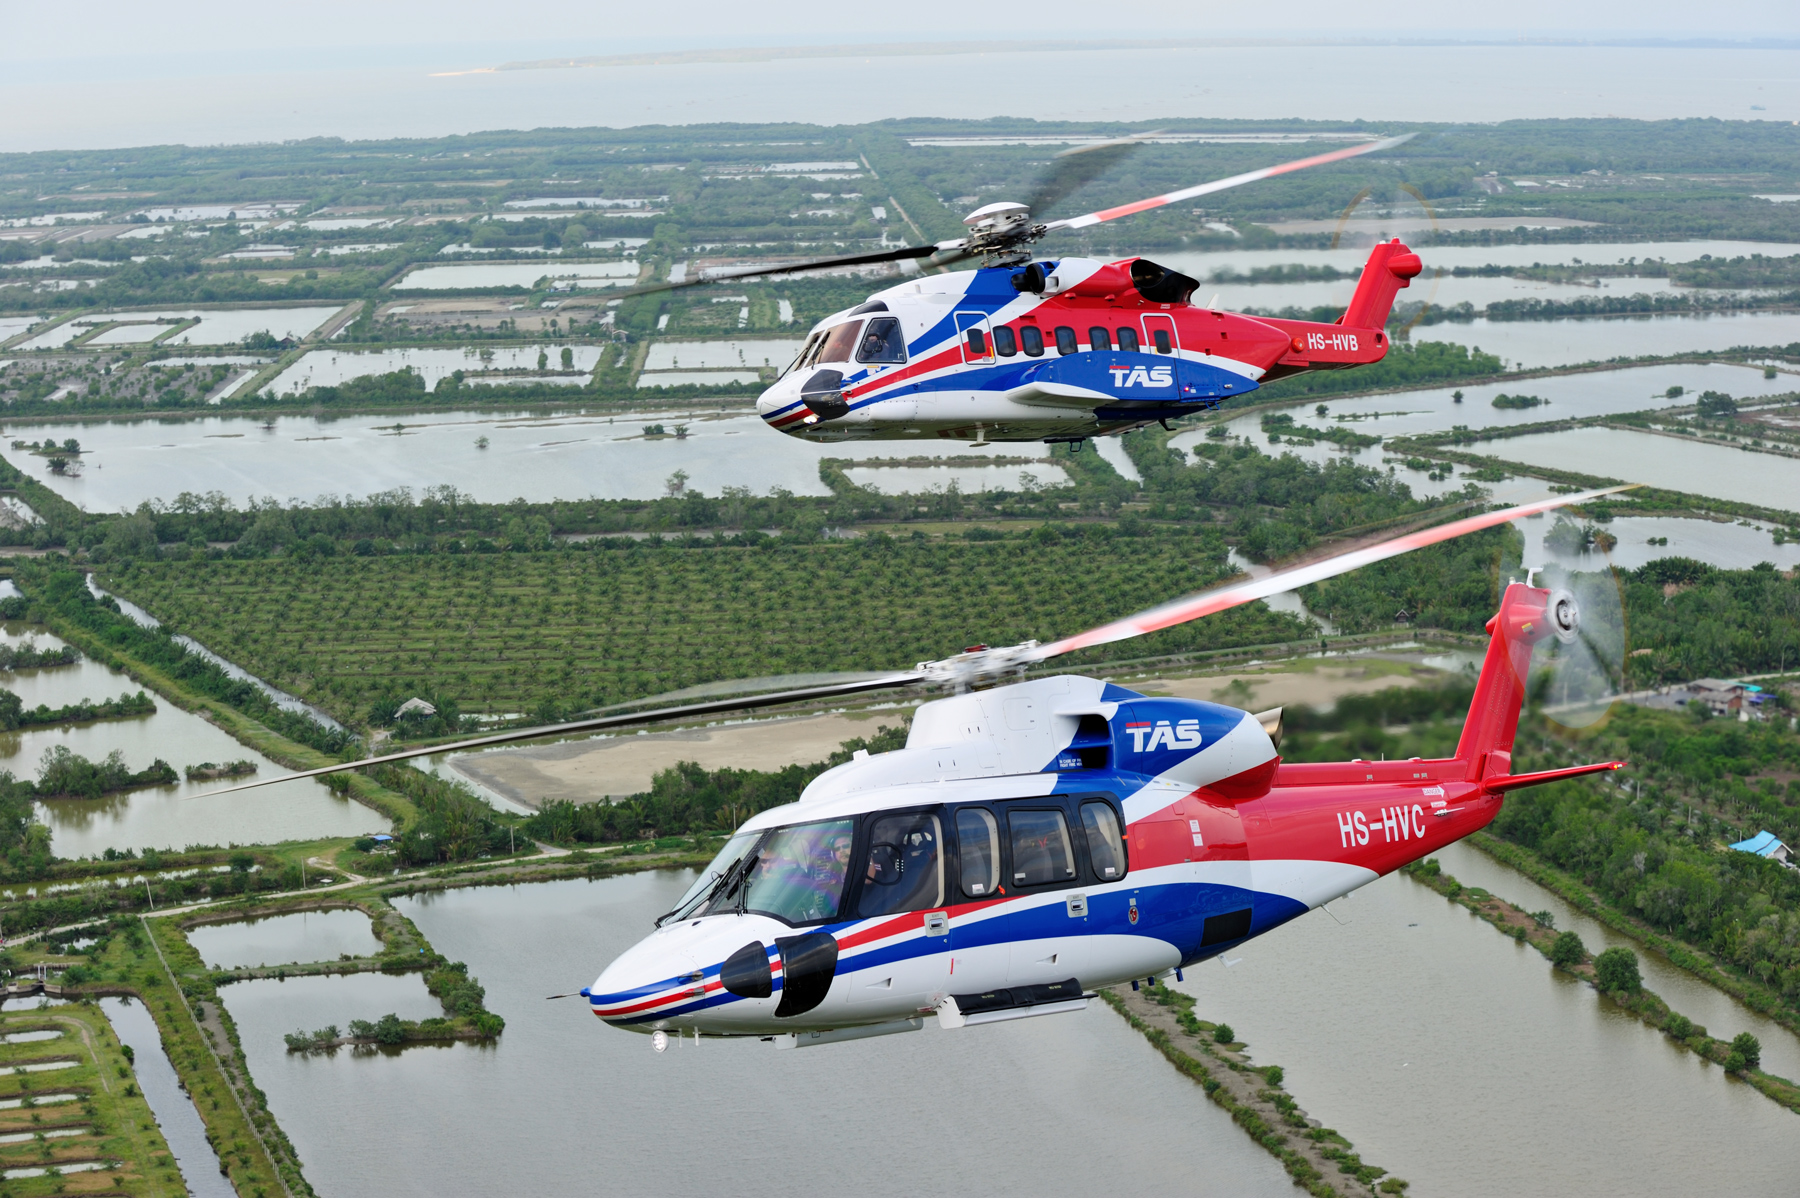 Sikorsky S-92 and Sikorsky S-76D